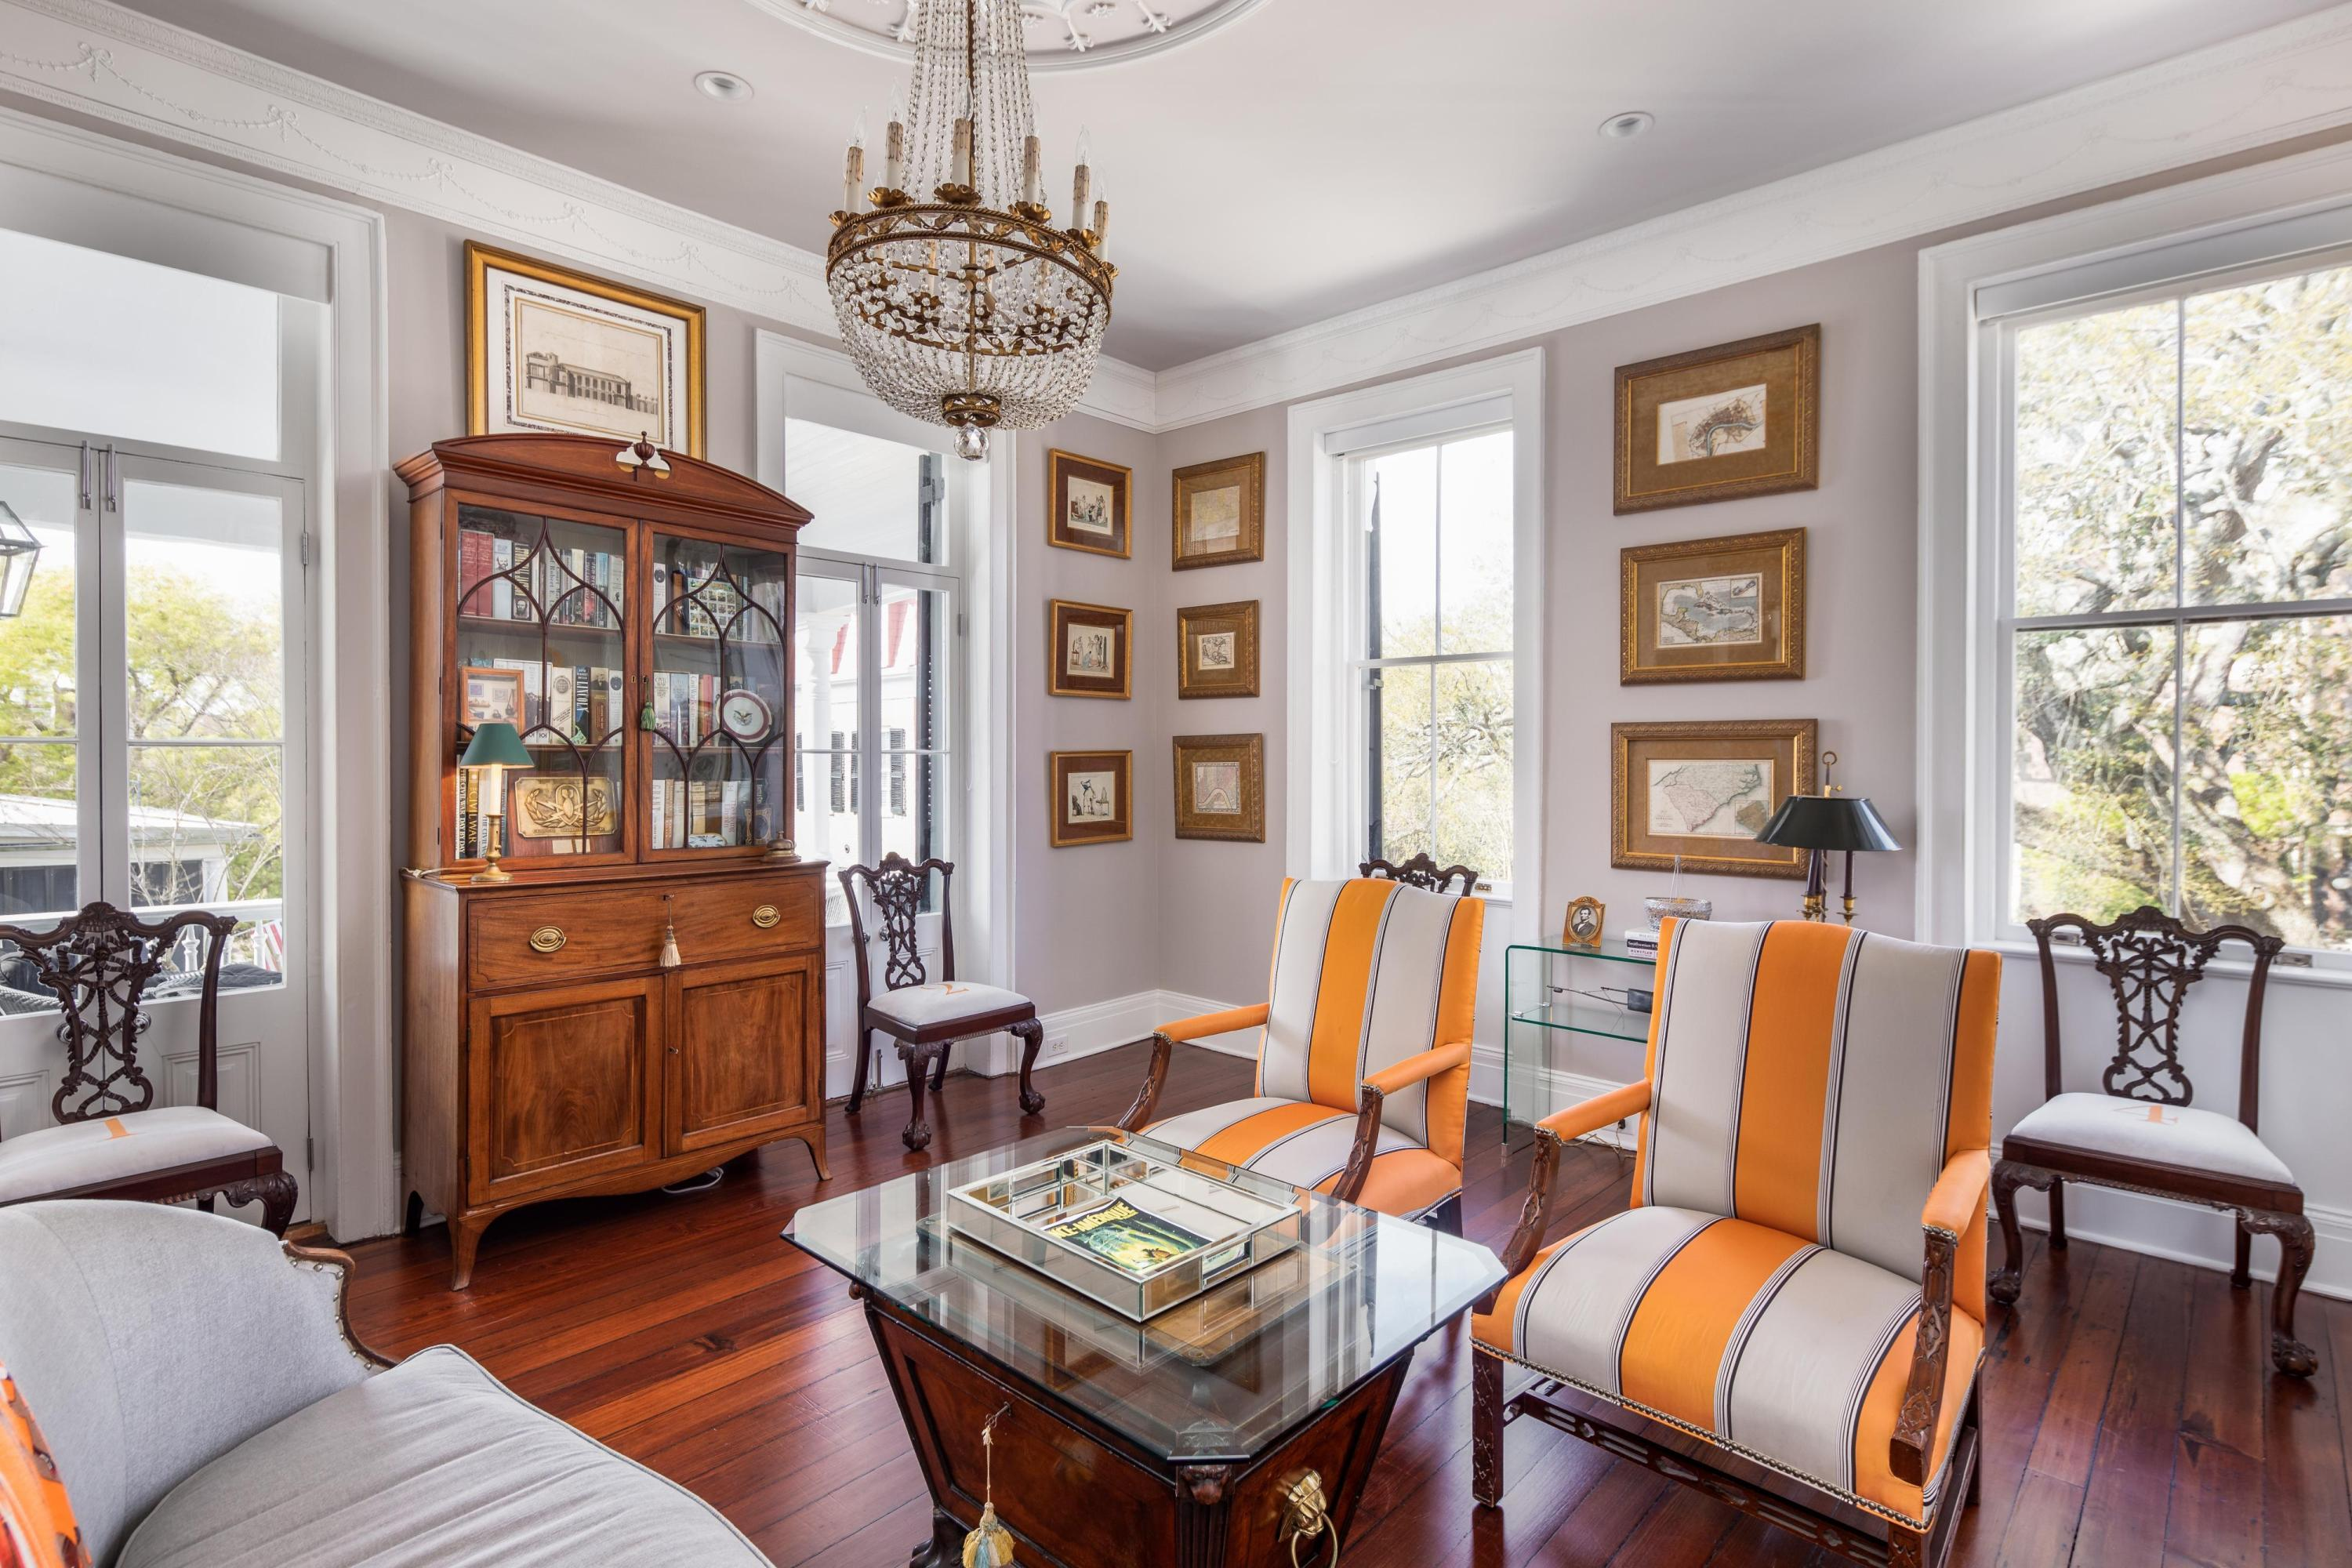 South of Broad Homes For Sale - 18 Church, Charleston, SC - 93